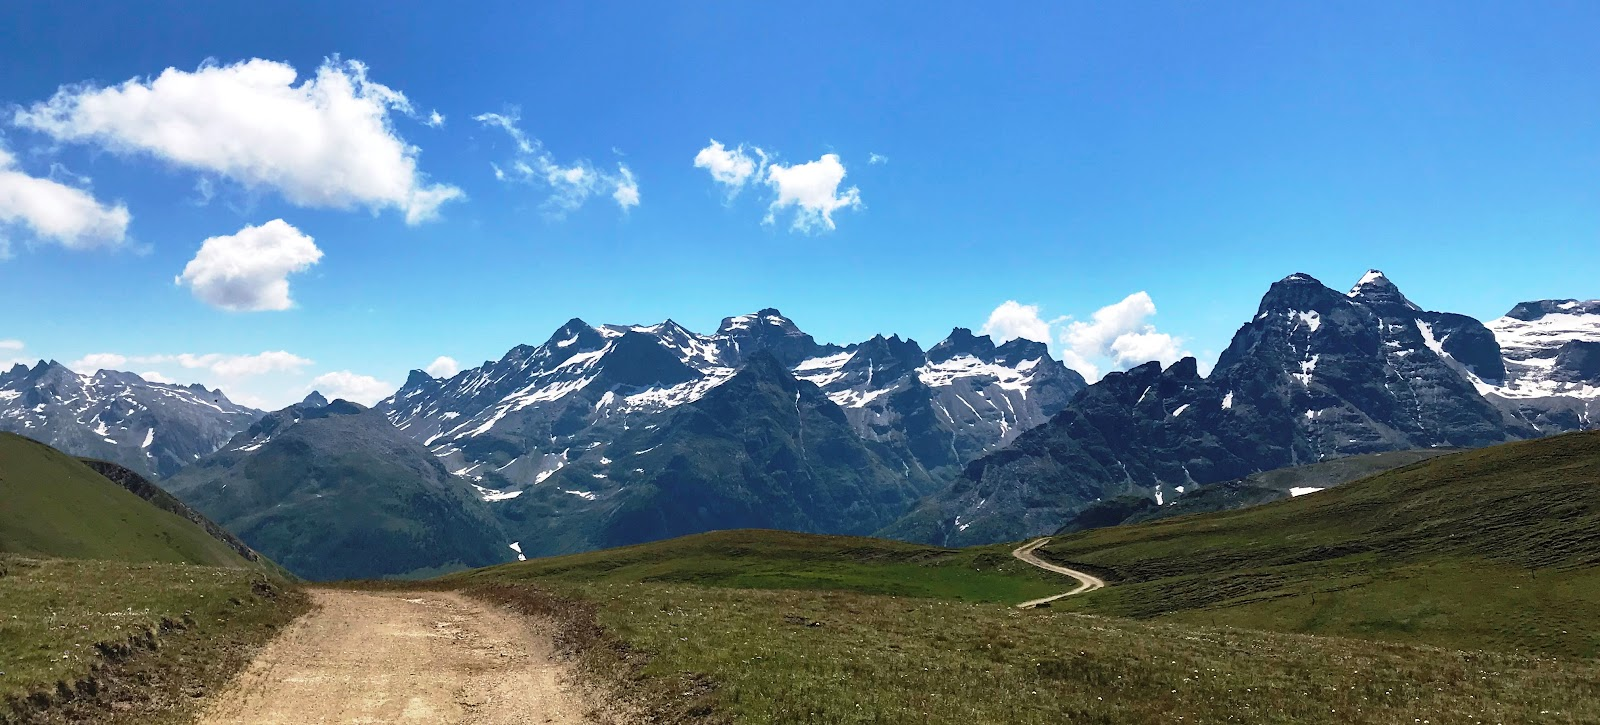 Cycling Breithorn - mountains, gravel road, fields